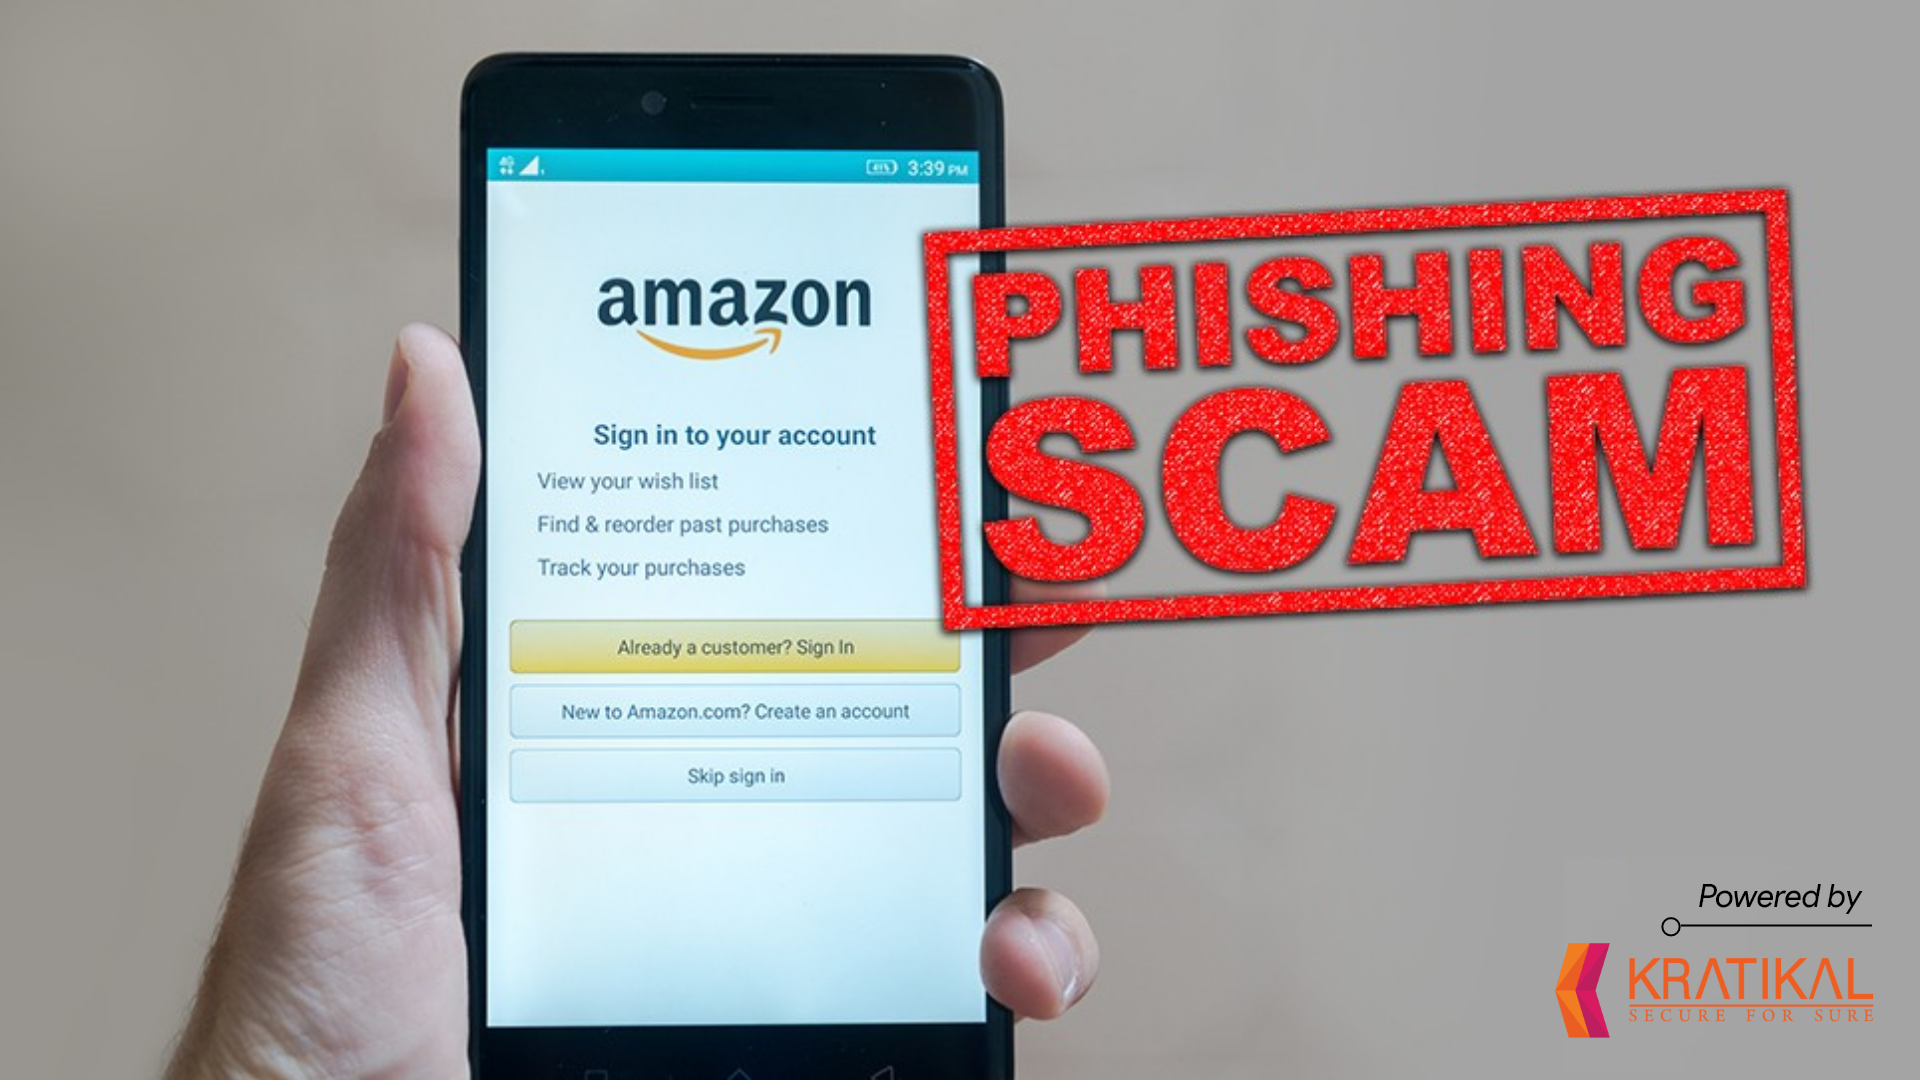 Amazon Phishing Scam, one of the most active cyberattacks.